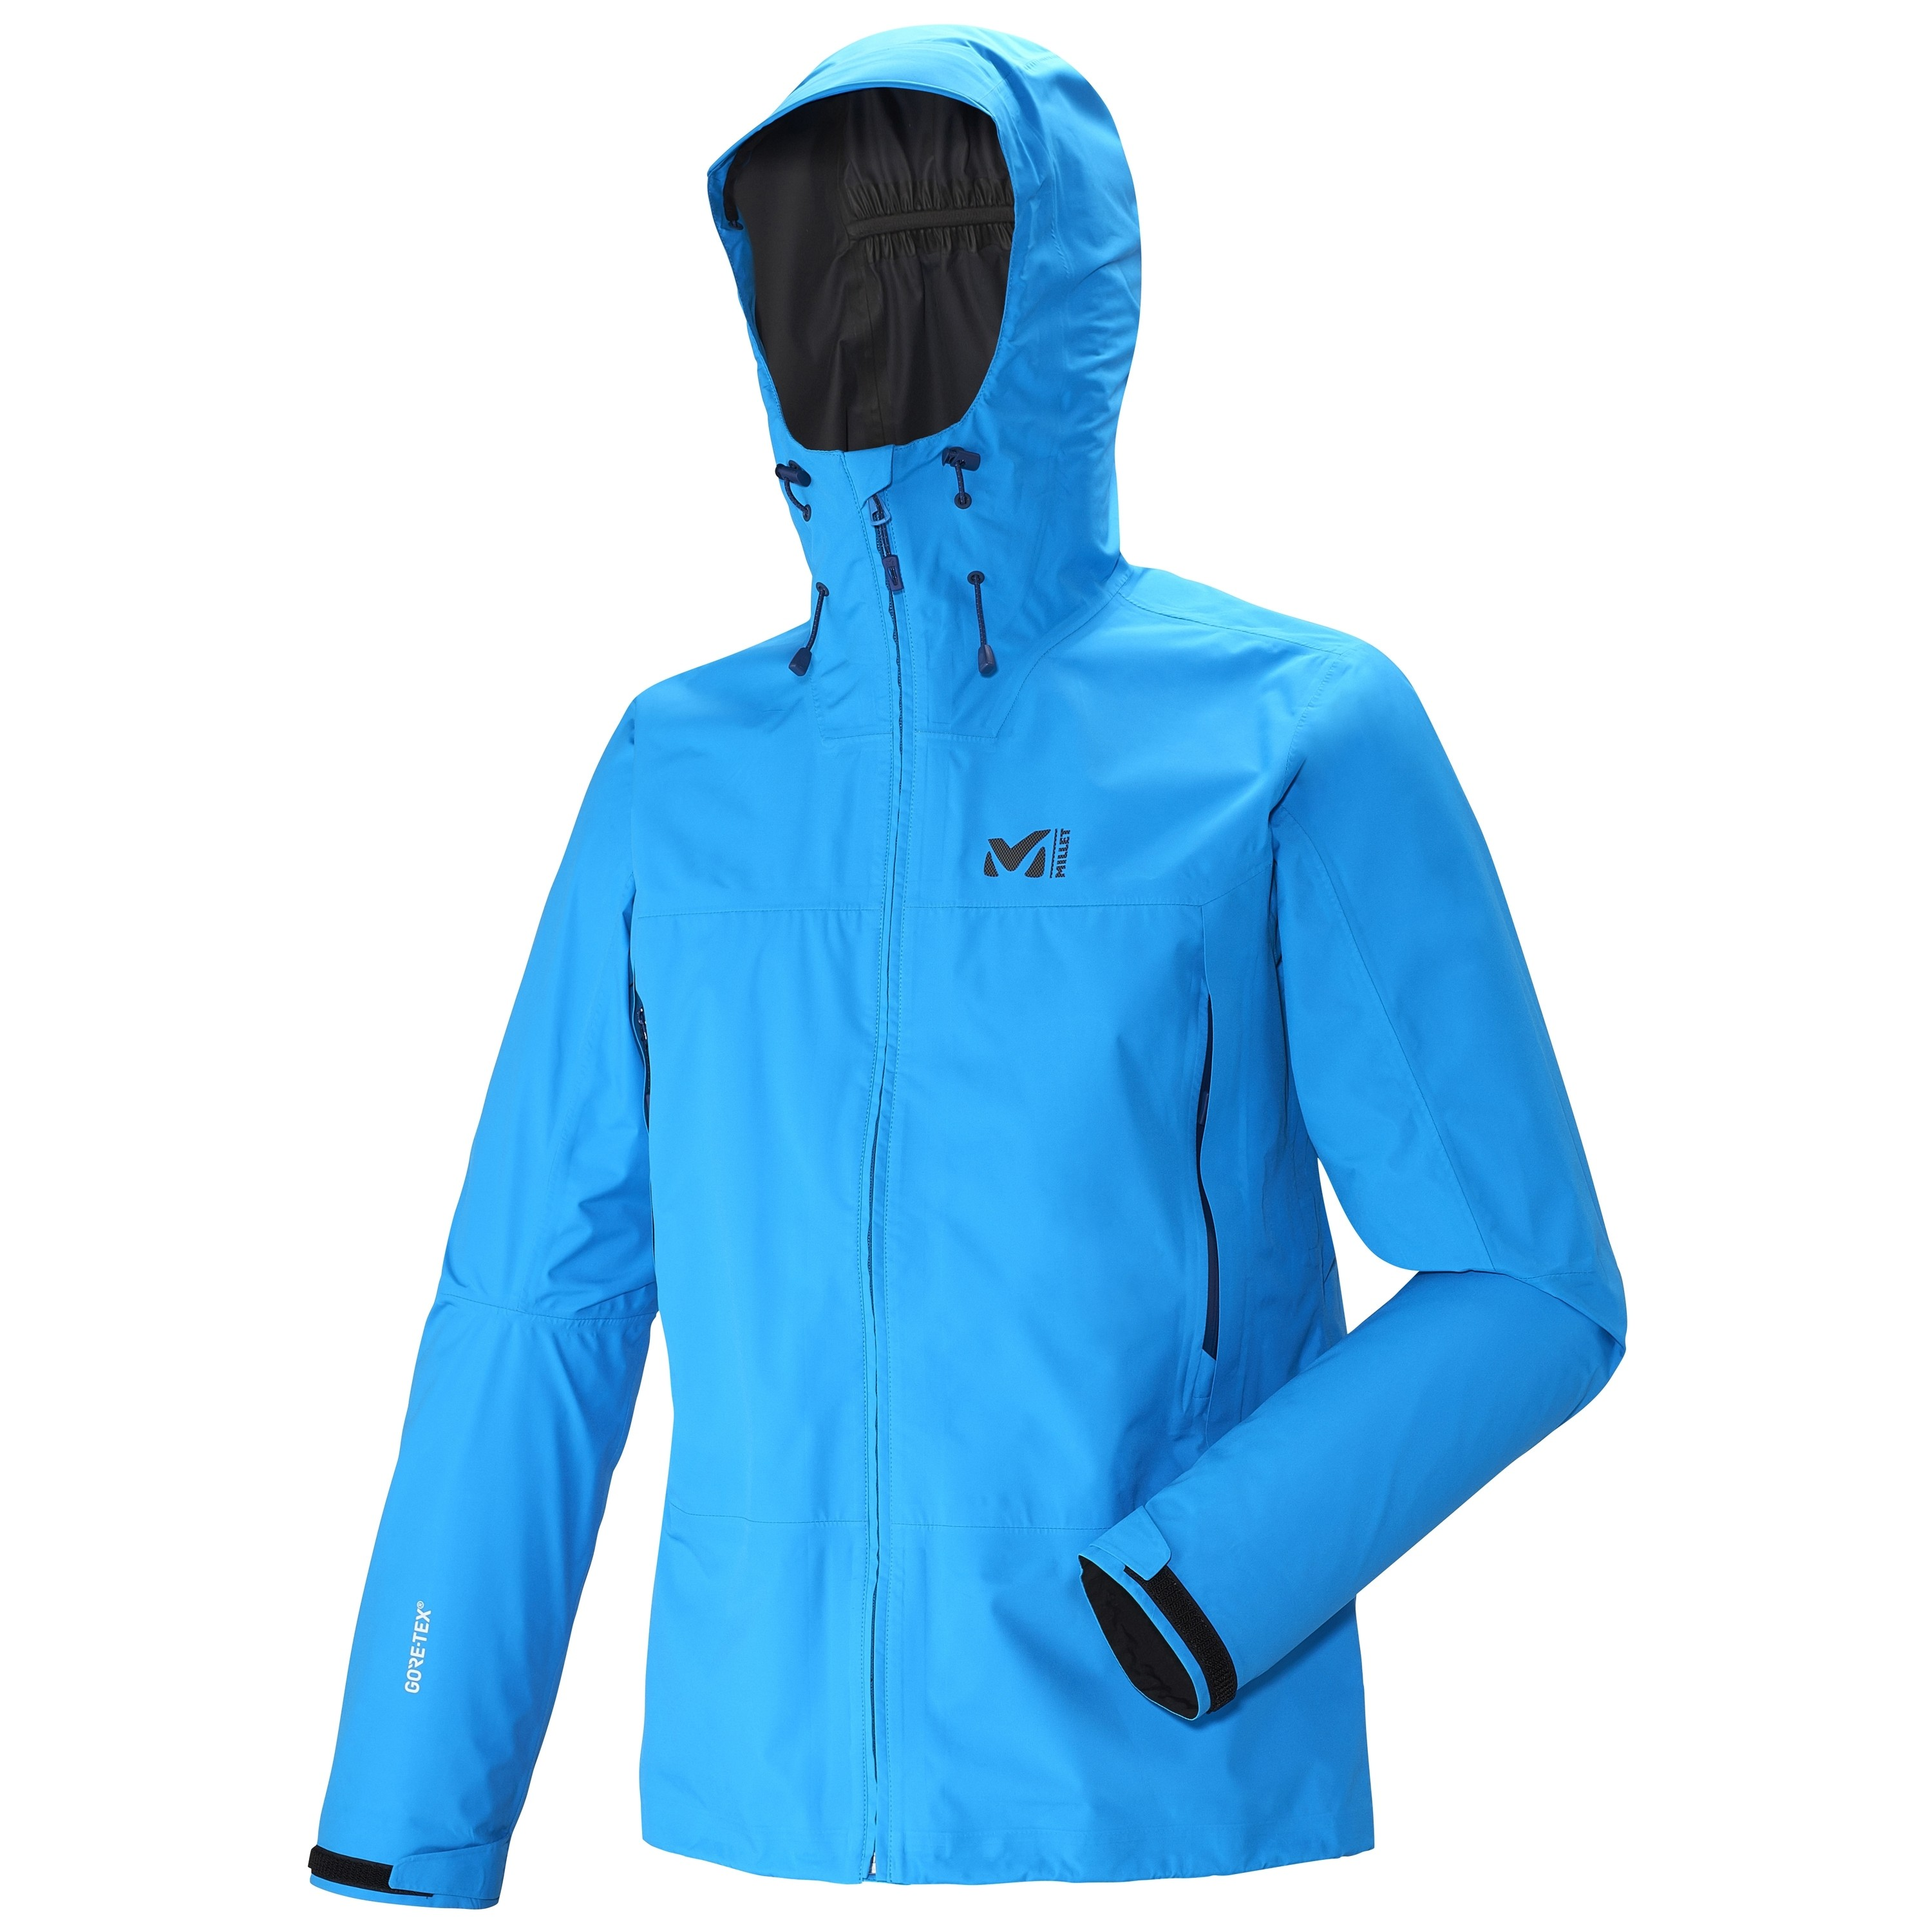 GRAYS PEAK GTX JKT